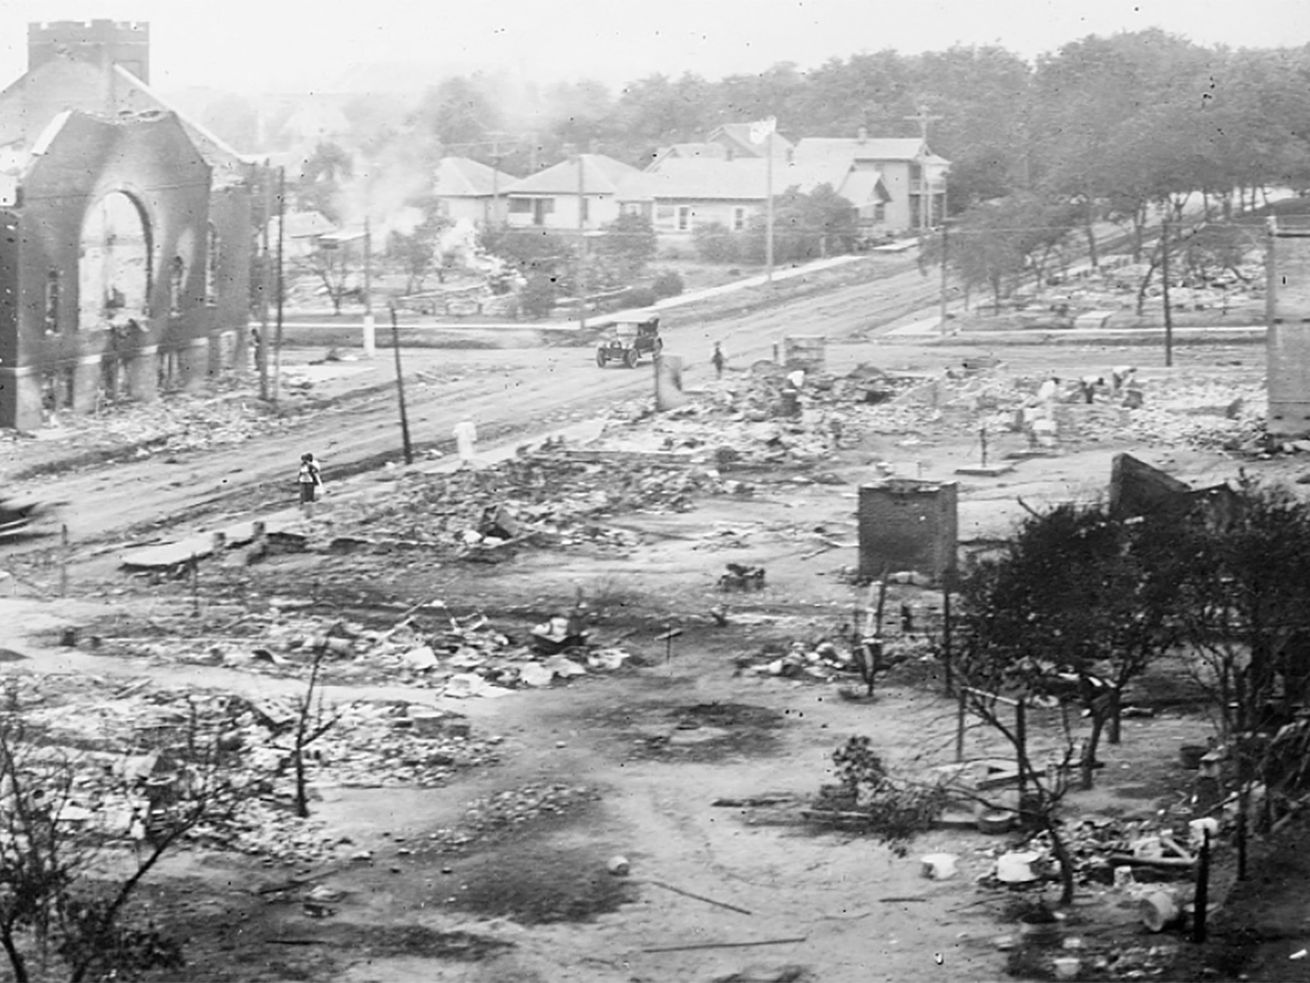 This June 1921 photo shows the aftermath of the the Tulsa Race Massacre in Tulsa, Oklahoma. -